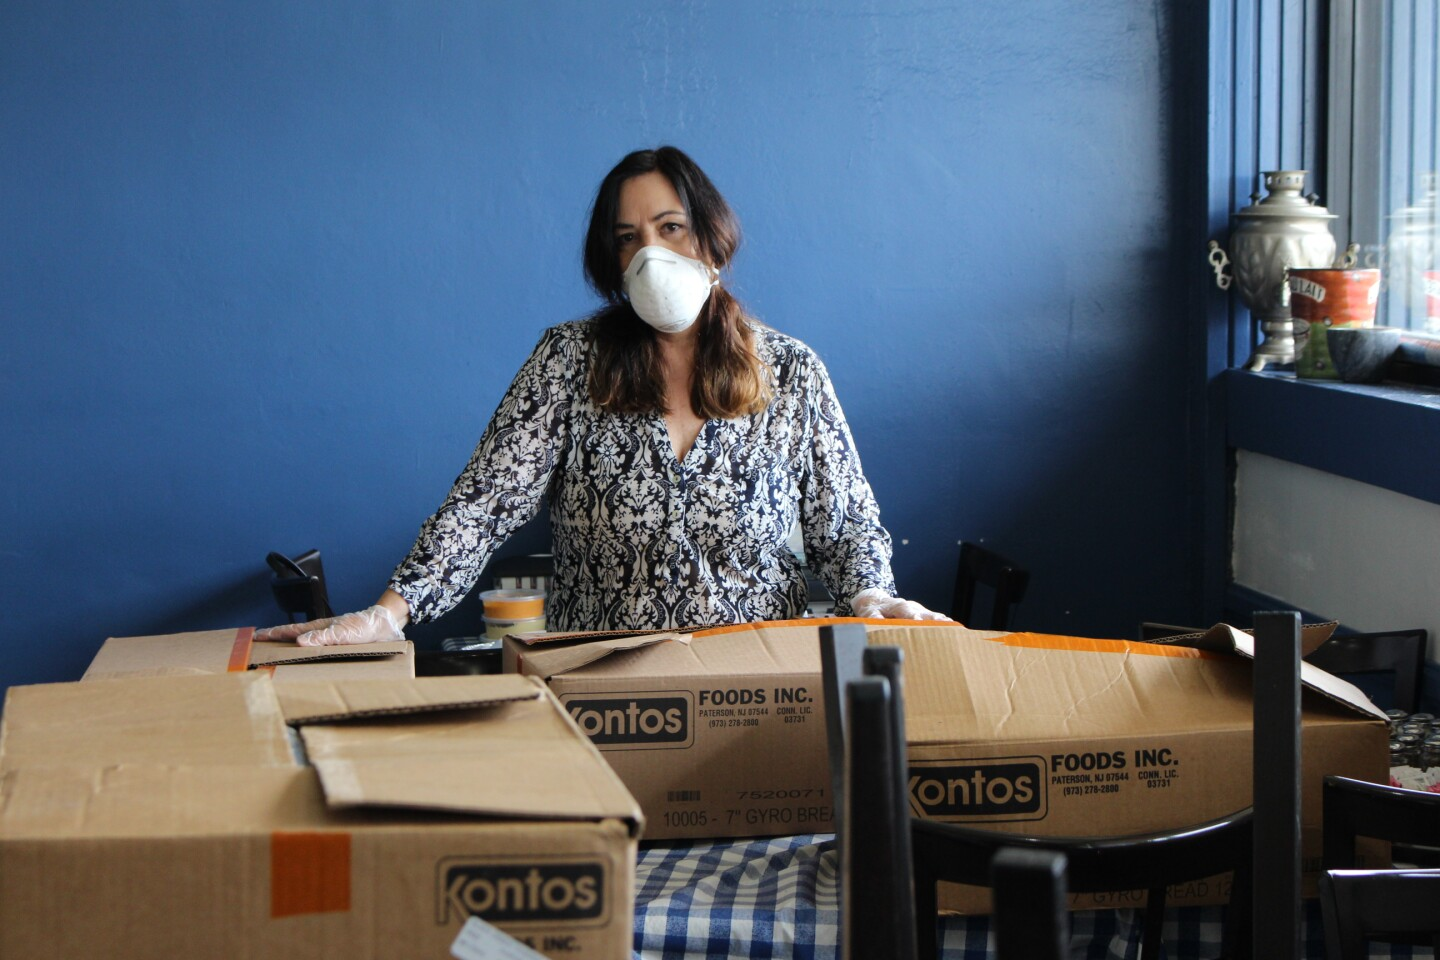 Woman with mask on posing with boxes of food for healthcare workers during COVID-19 outbreak